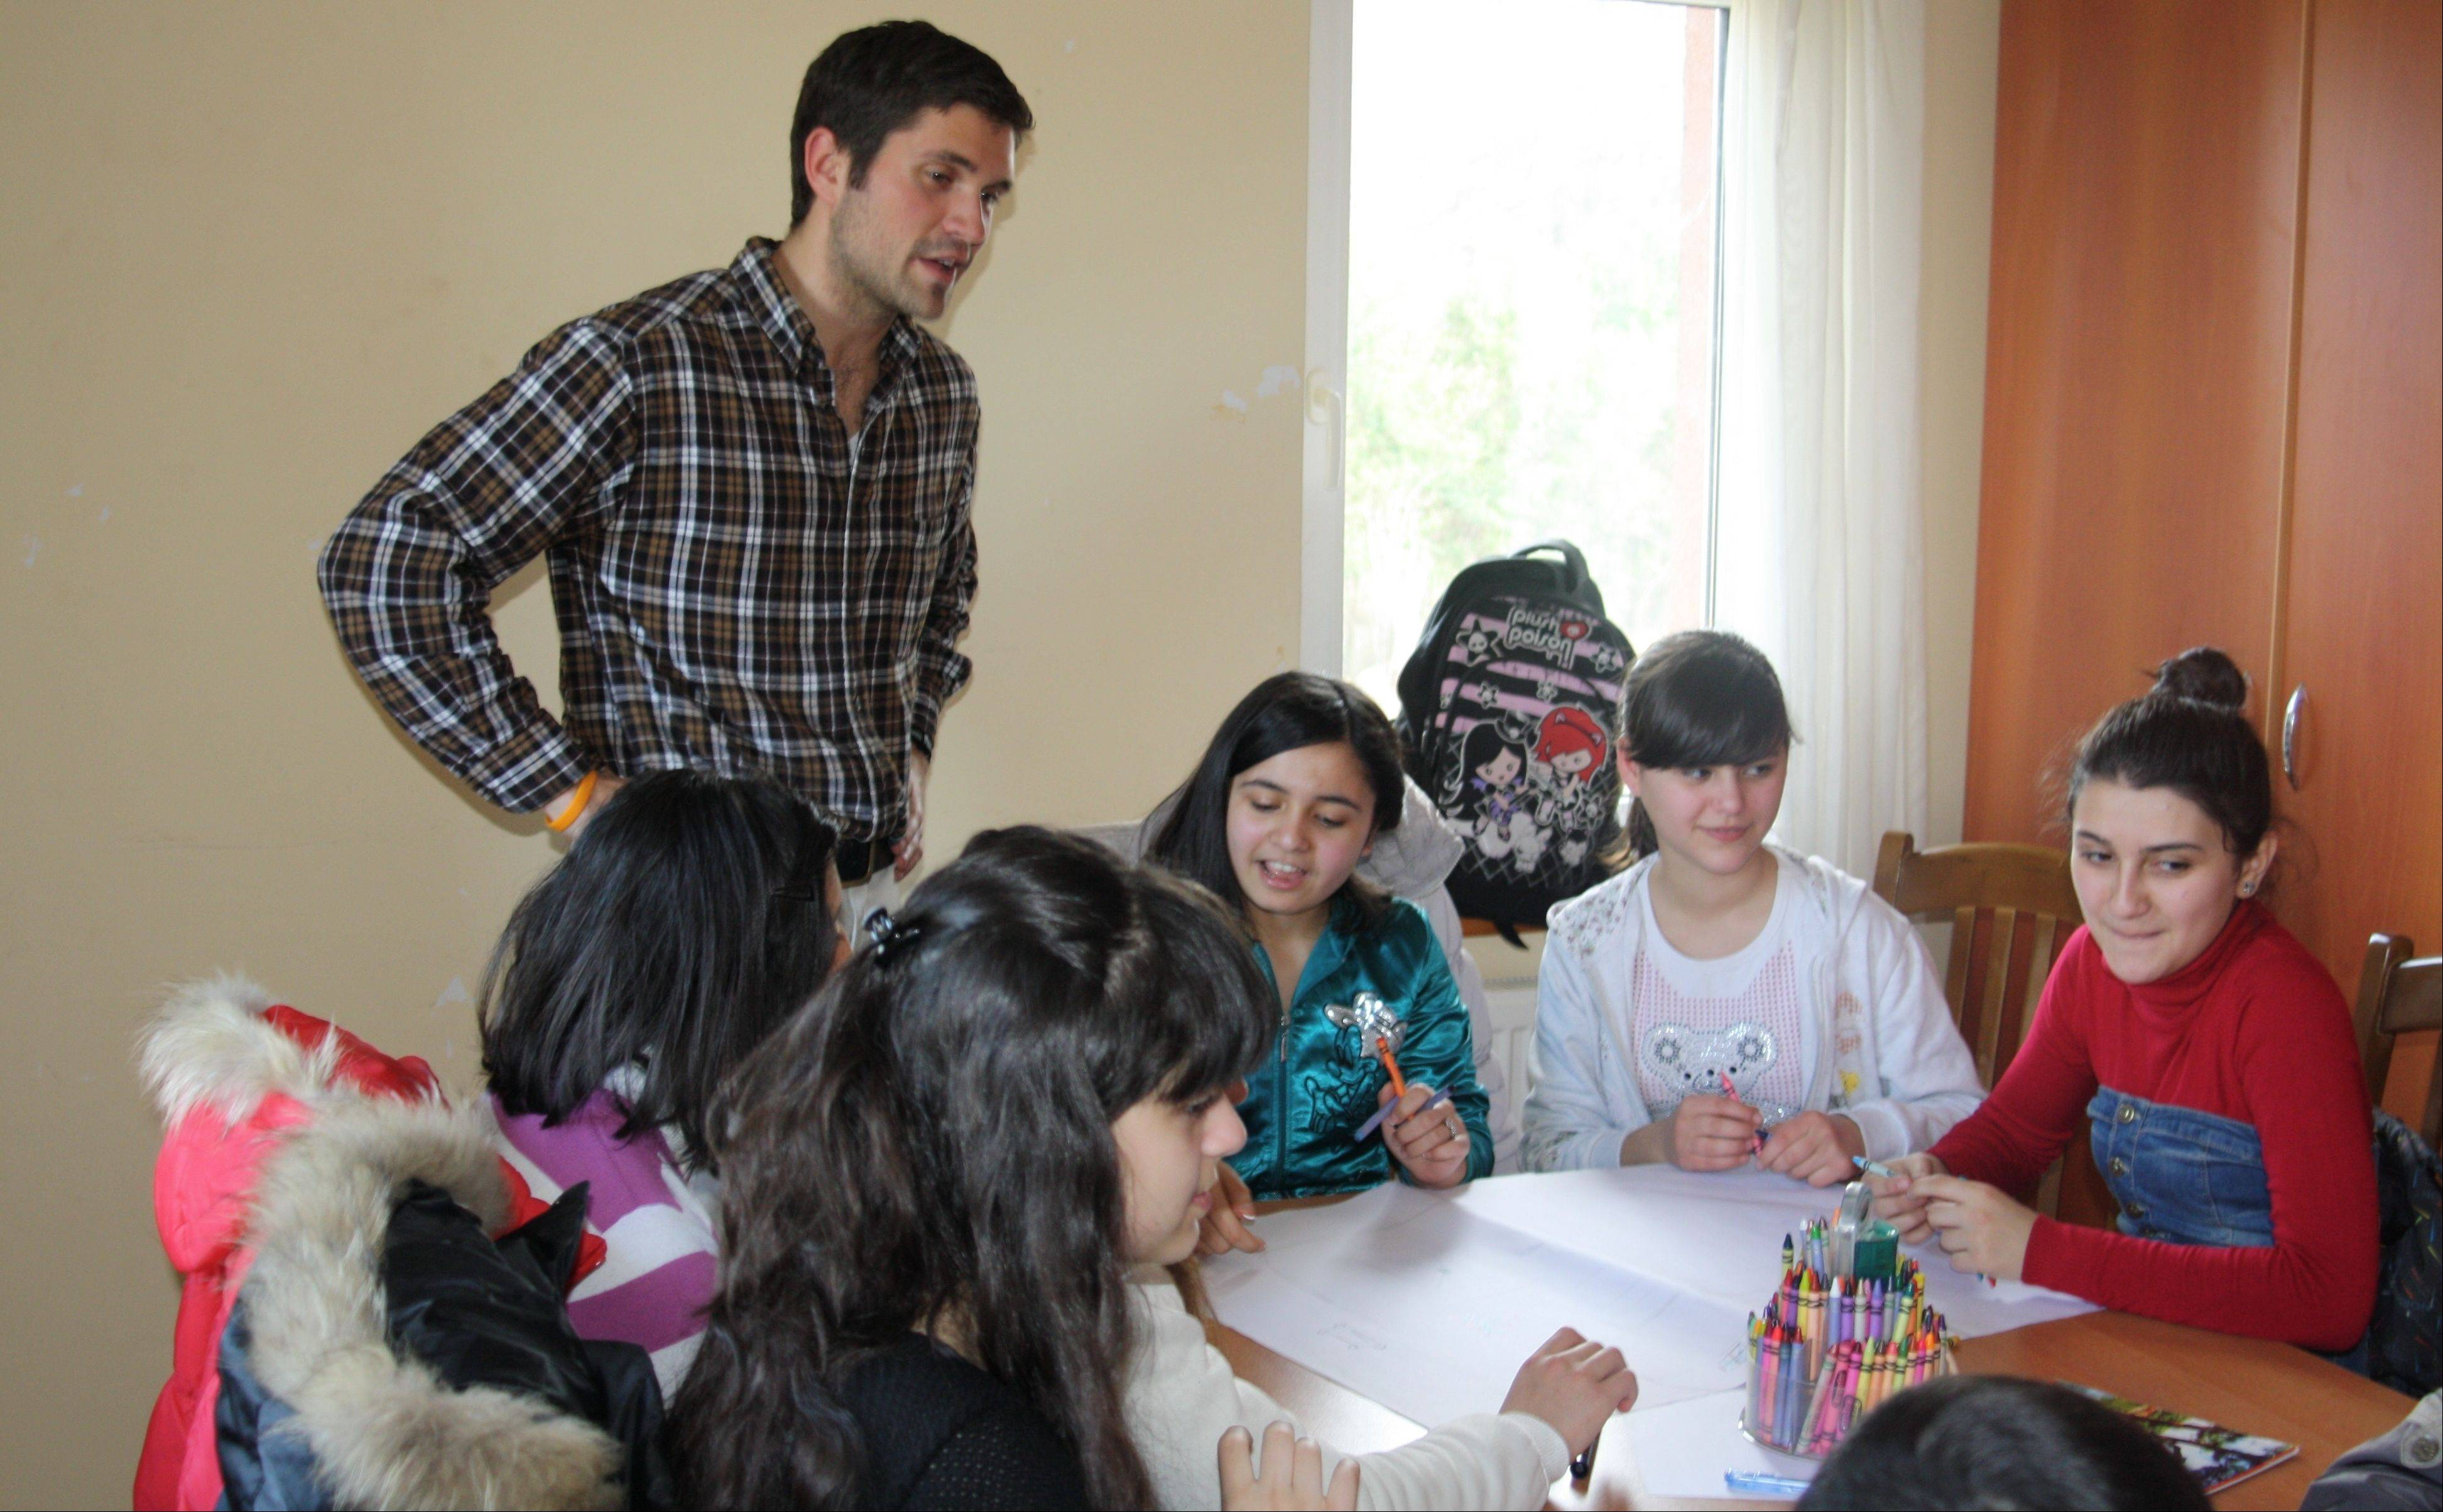 Kevin King of Batavia is serving 27 months as a Peace Corps volunteer in Azerbaijan.